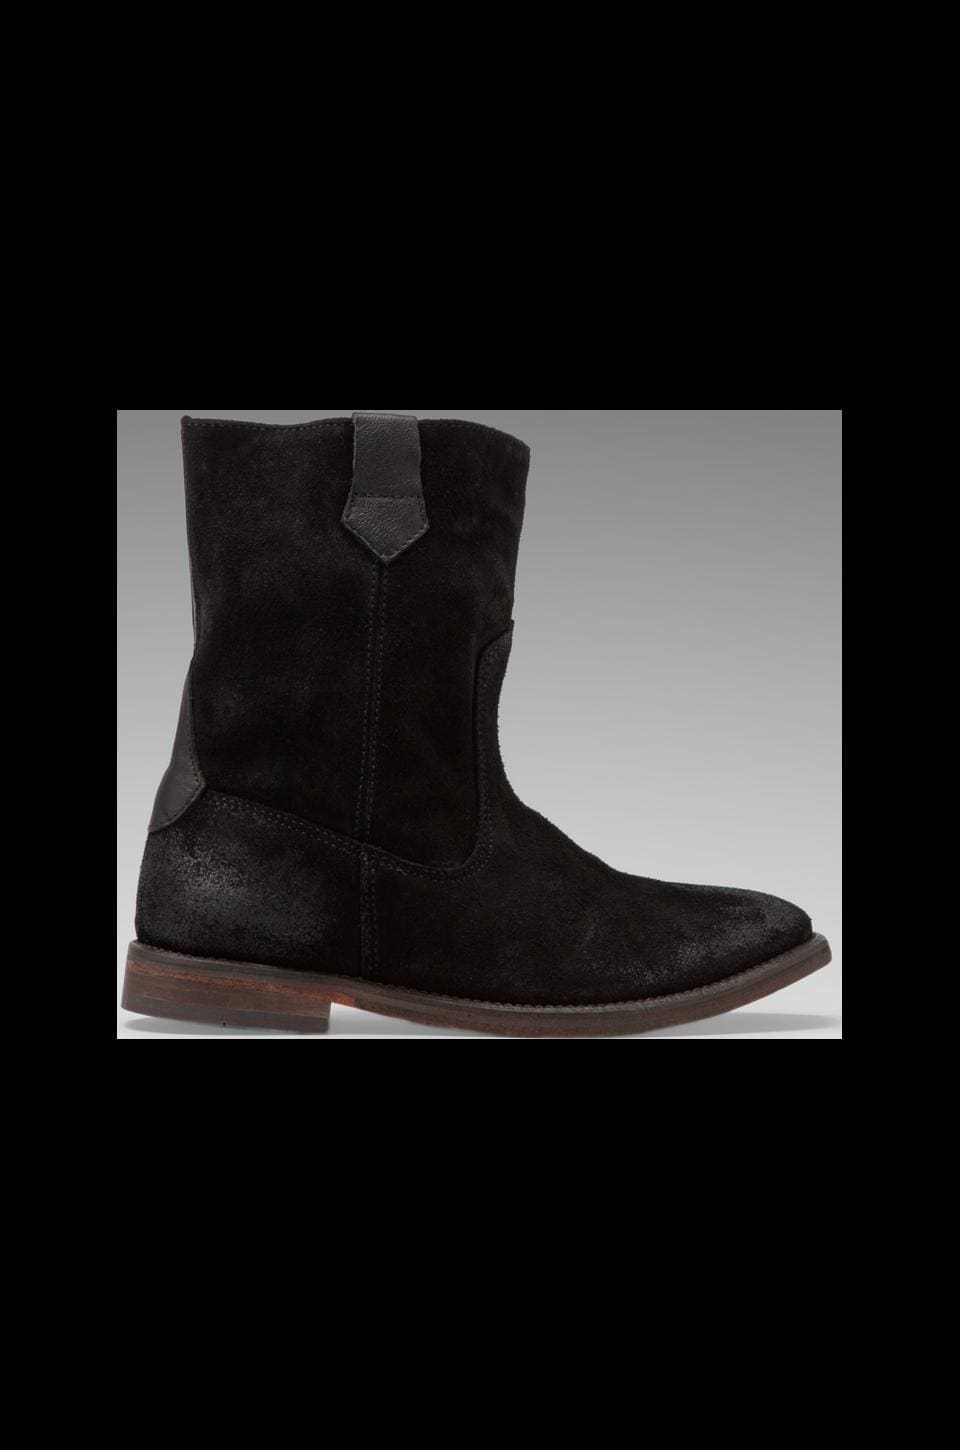 H by Hudson Hanwell Bootie in Black